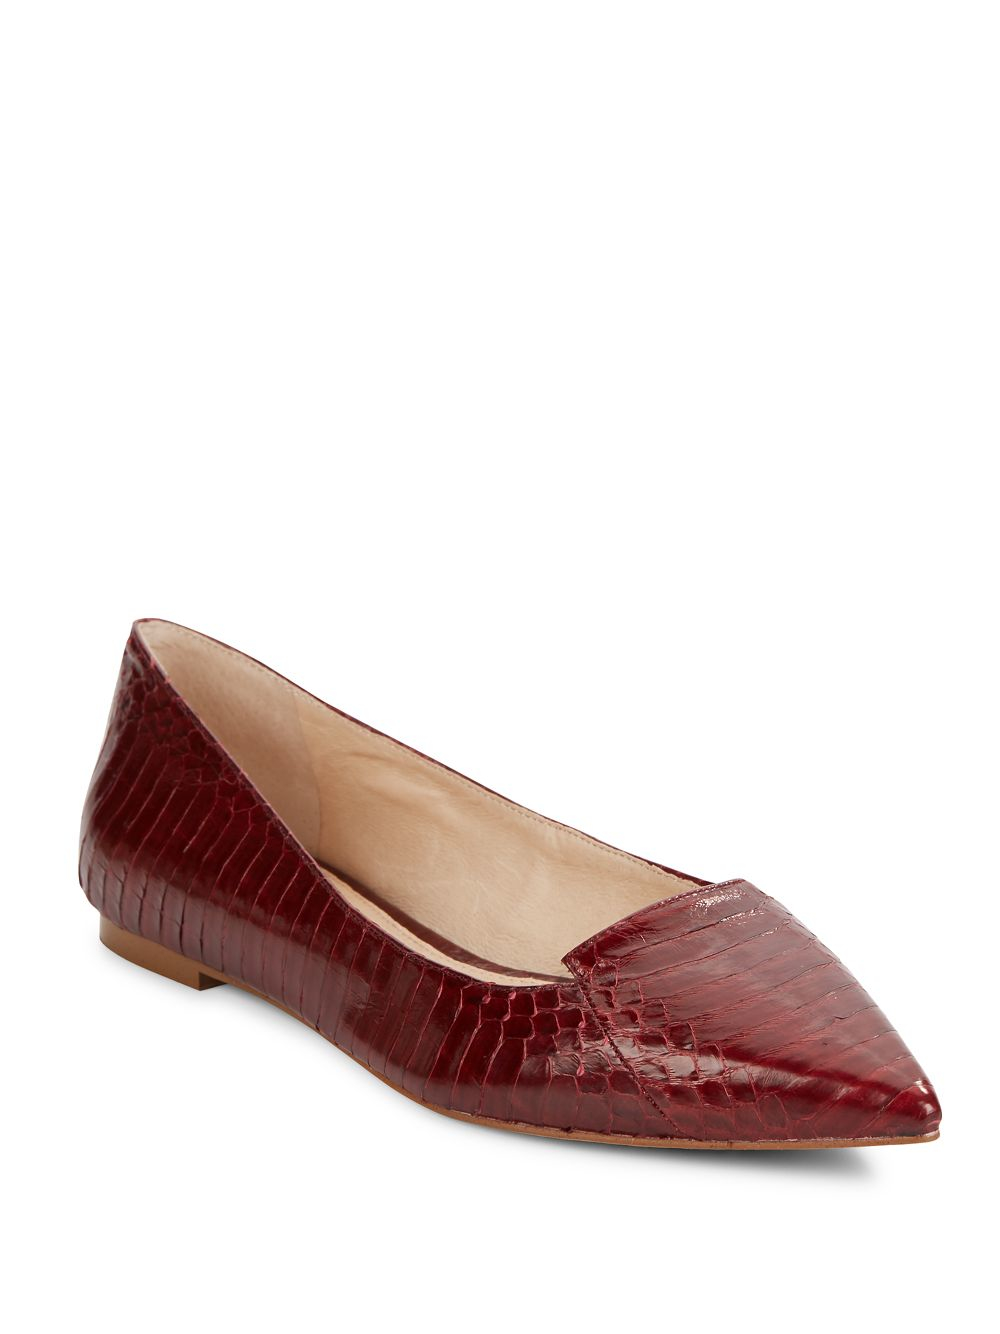 Lyst Vince Camuto Empa Snakeskin Embossed Leather Flats